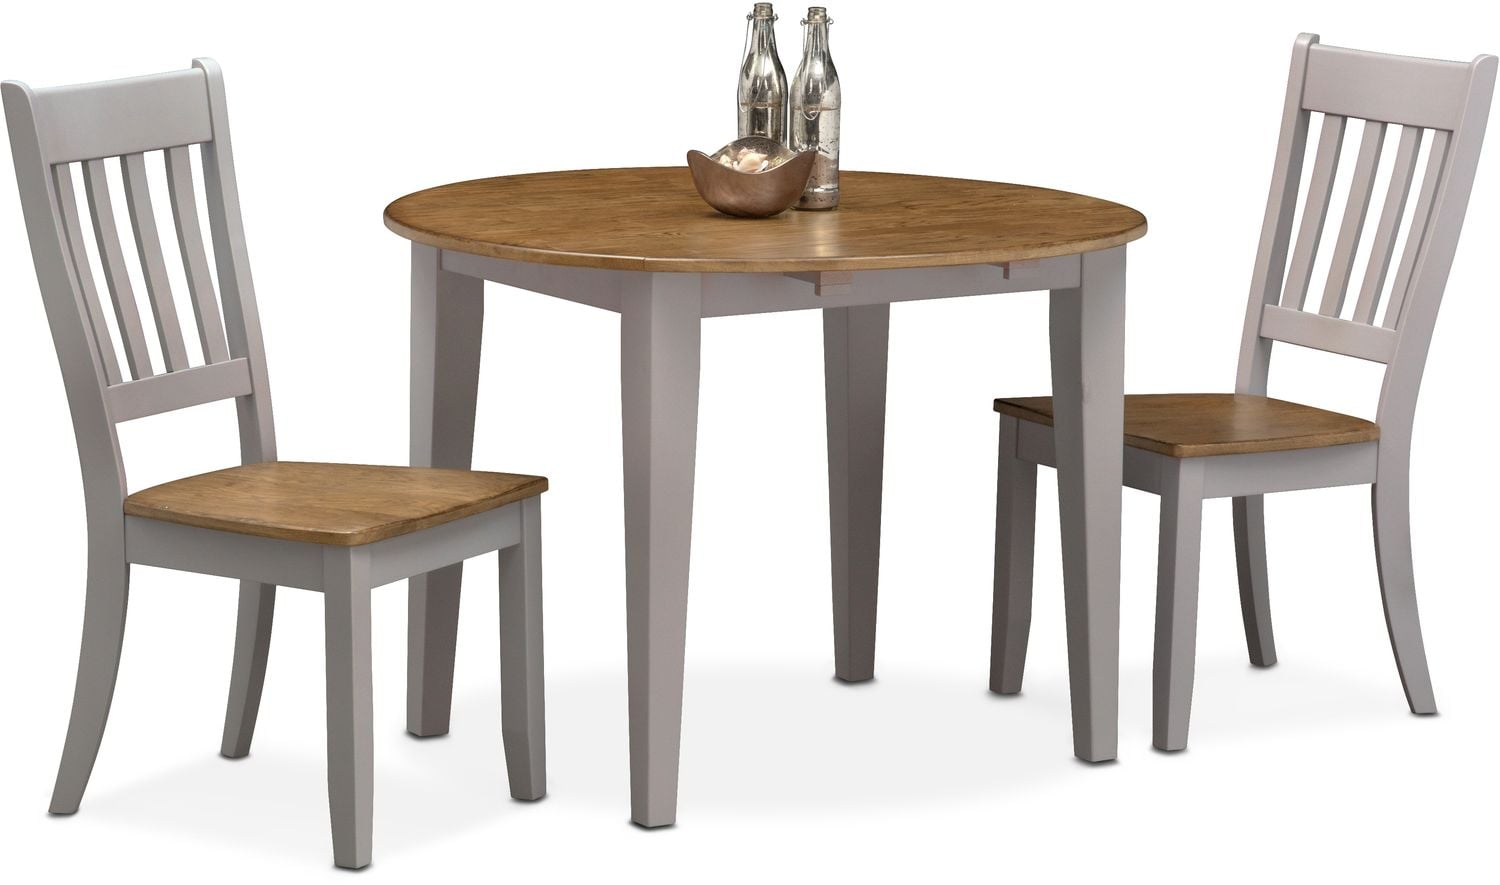 Dining Room Furniture - Nantucket Drop-Leaf Table and 2 Slat-Back Chairs - Oak and Gray